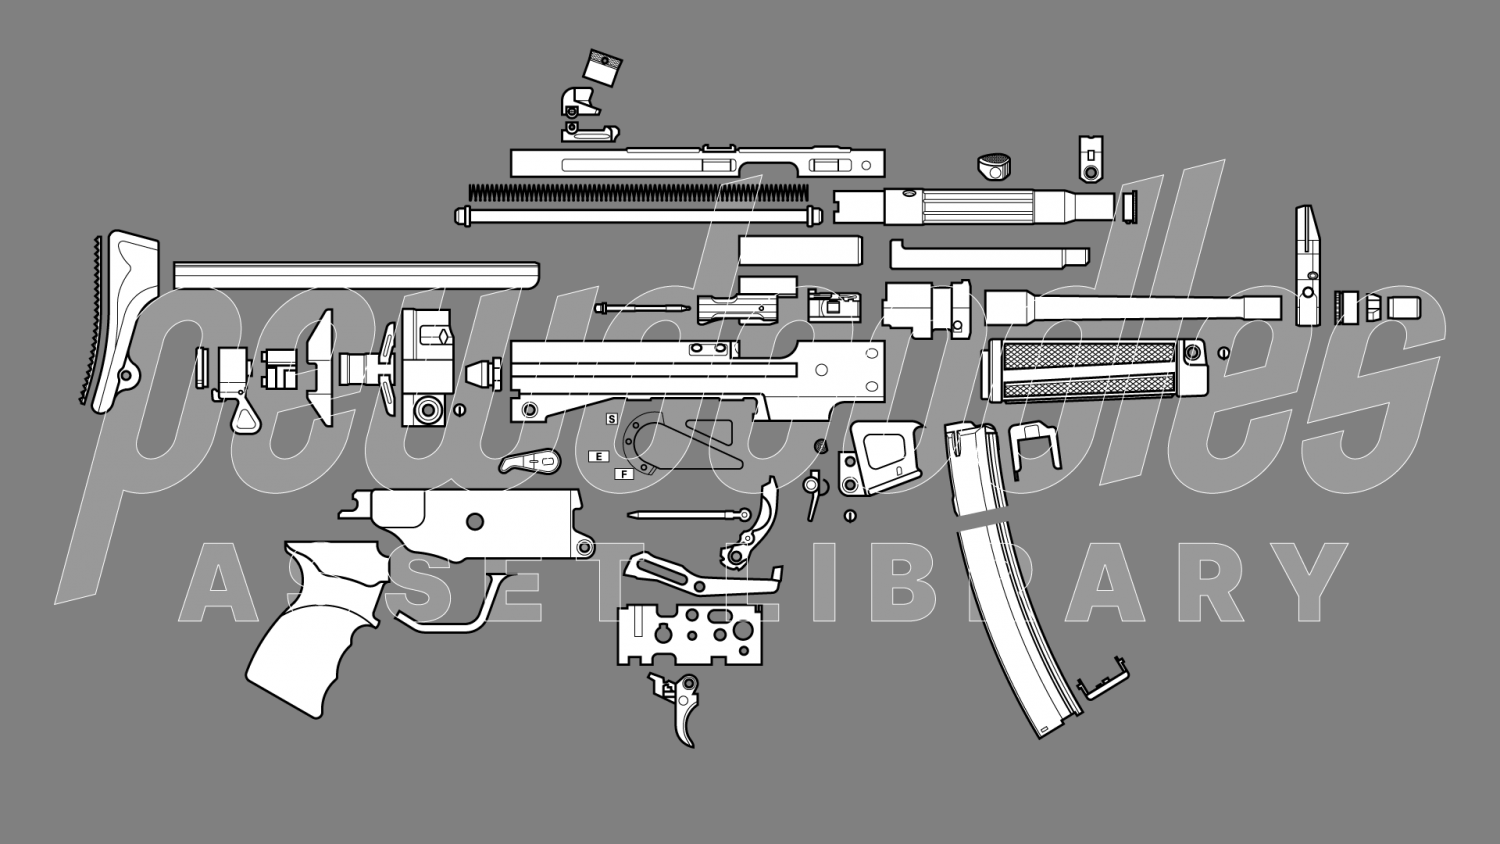 Pewdoodles disassembled MP5 drawing